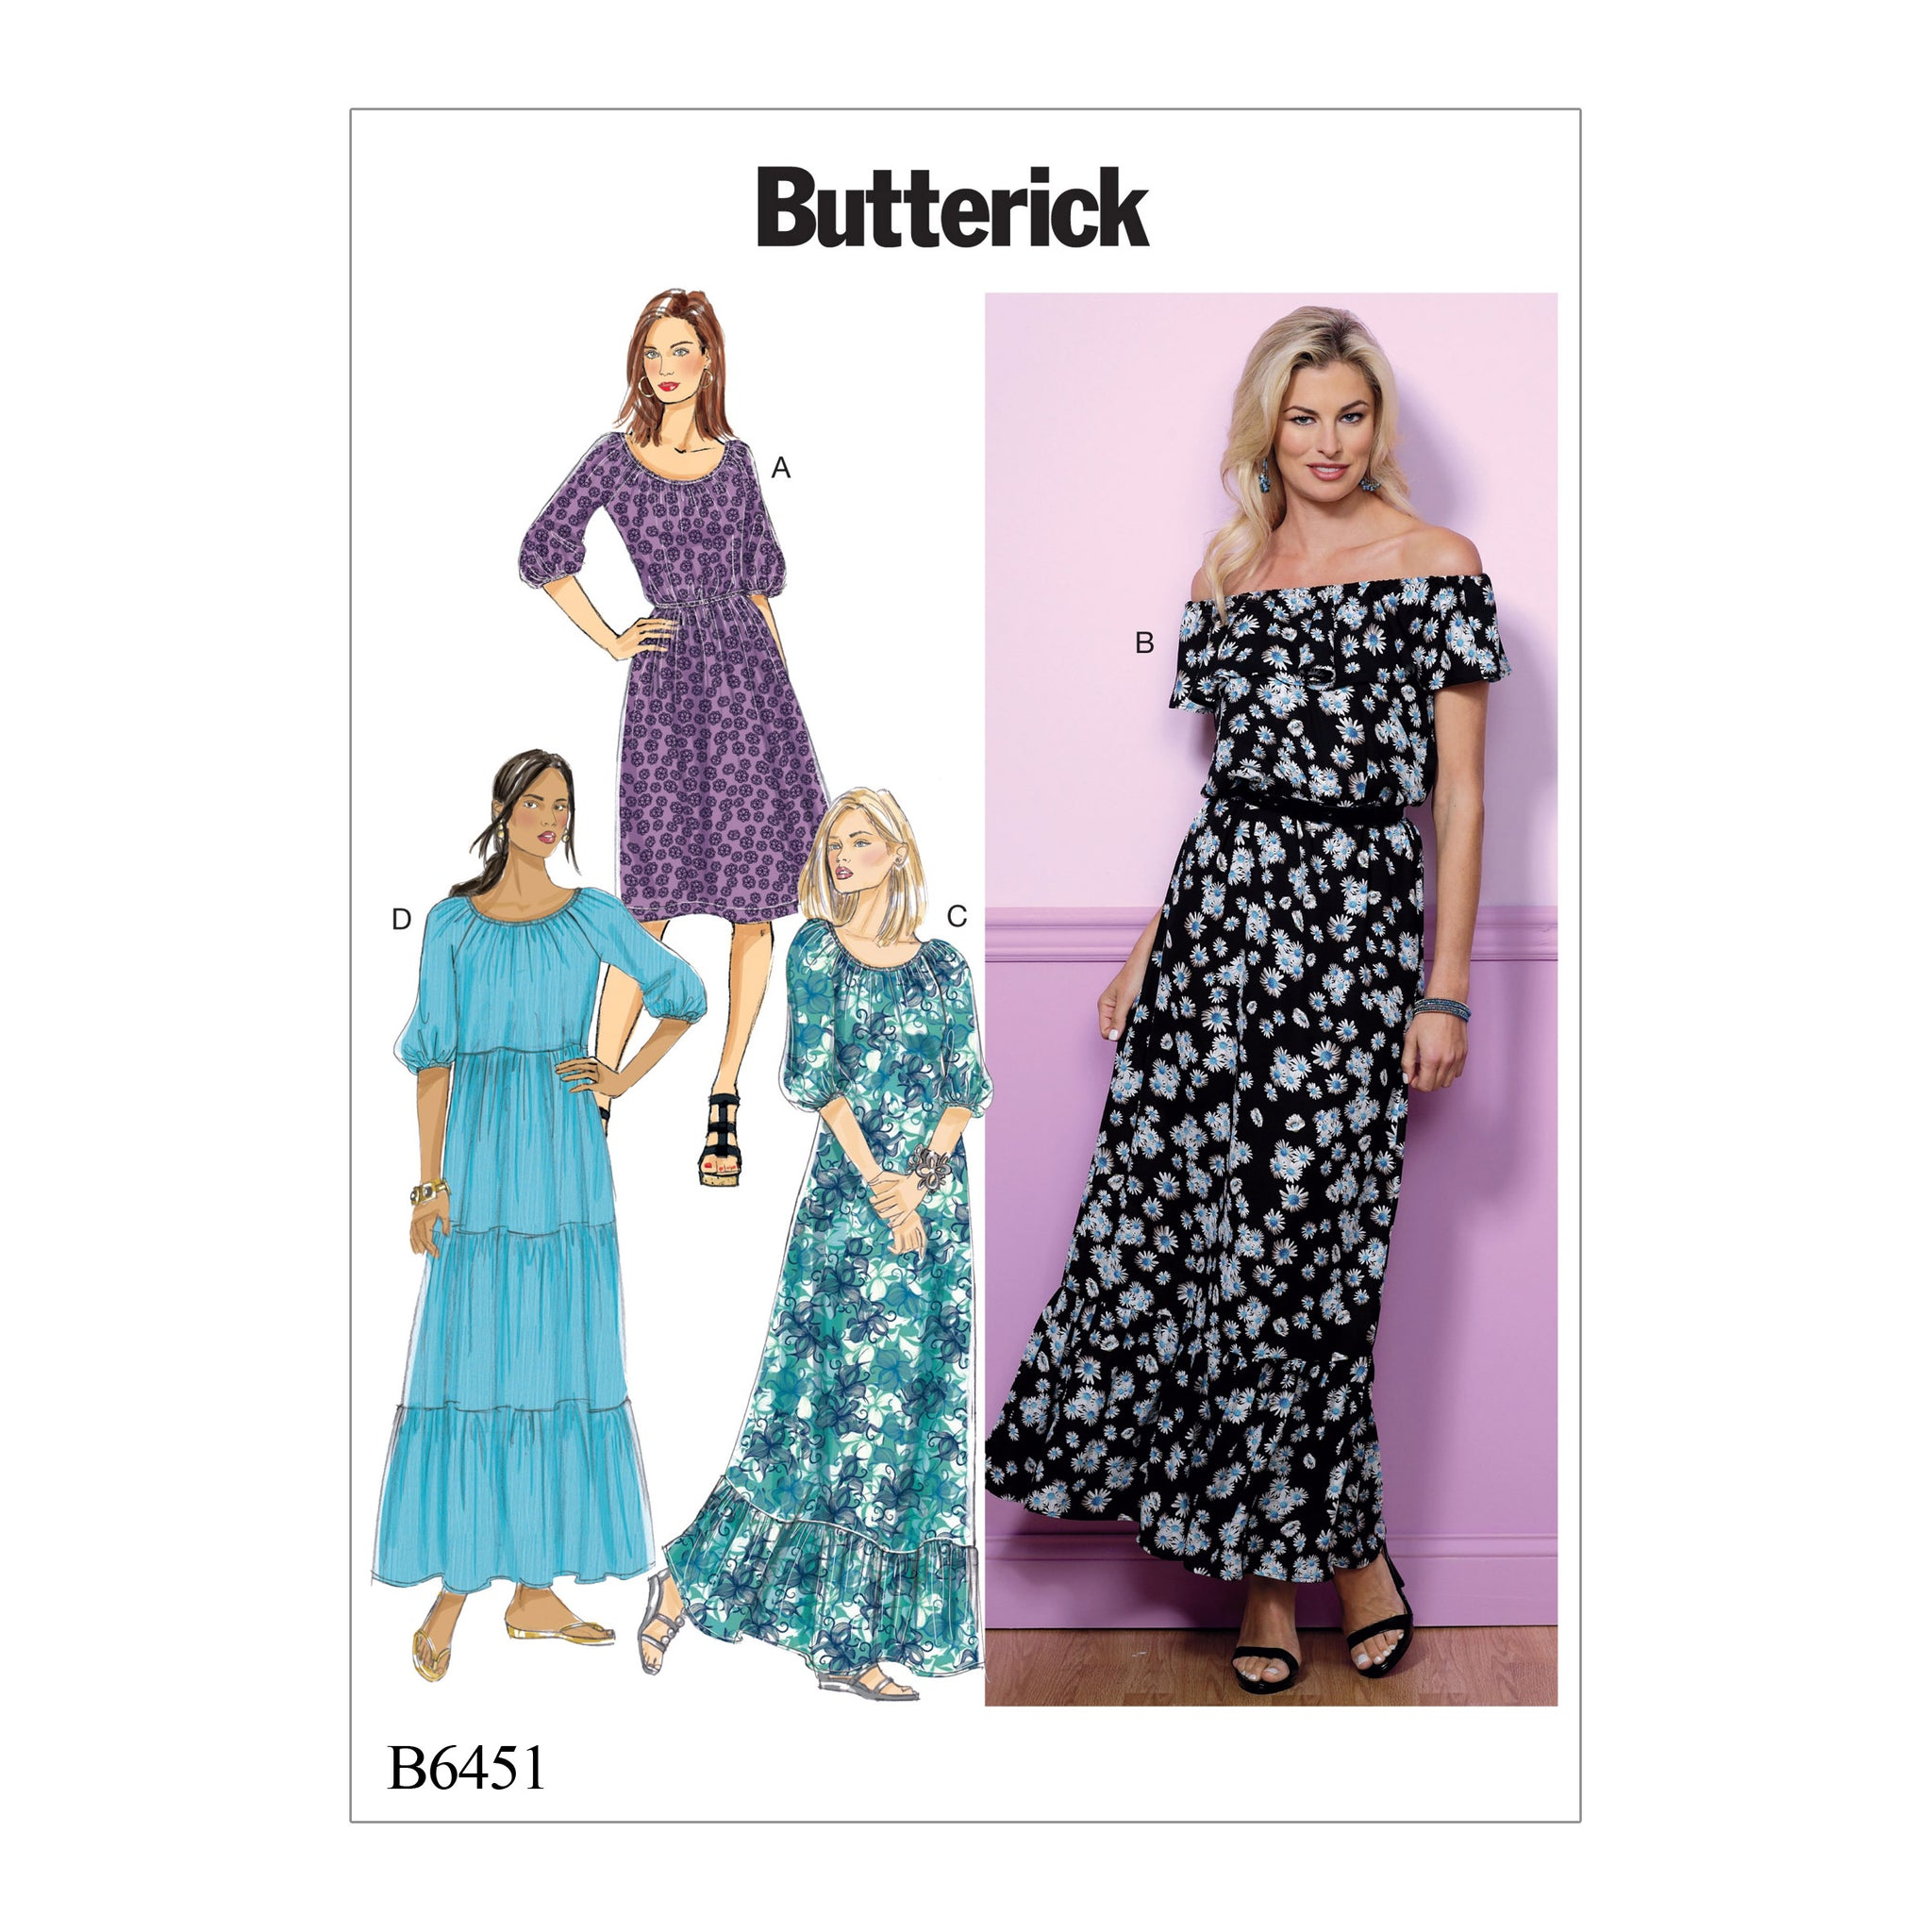 Butterick B64510Y0 Misses' Gathered, Blouson Dresses 4-6-8-10-12-14